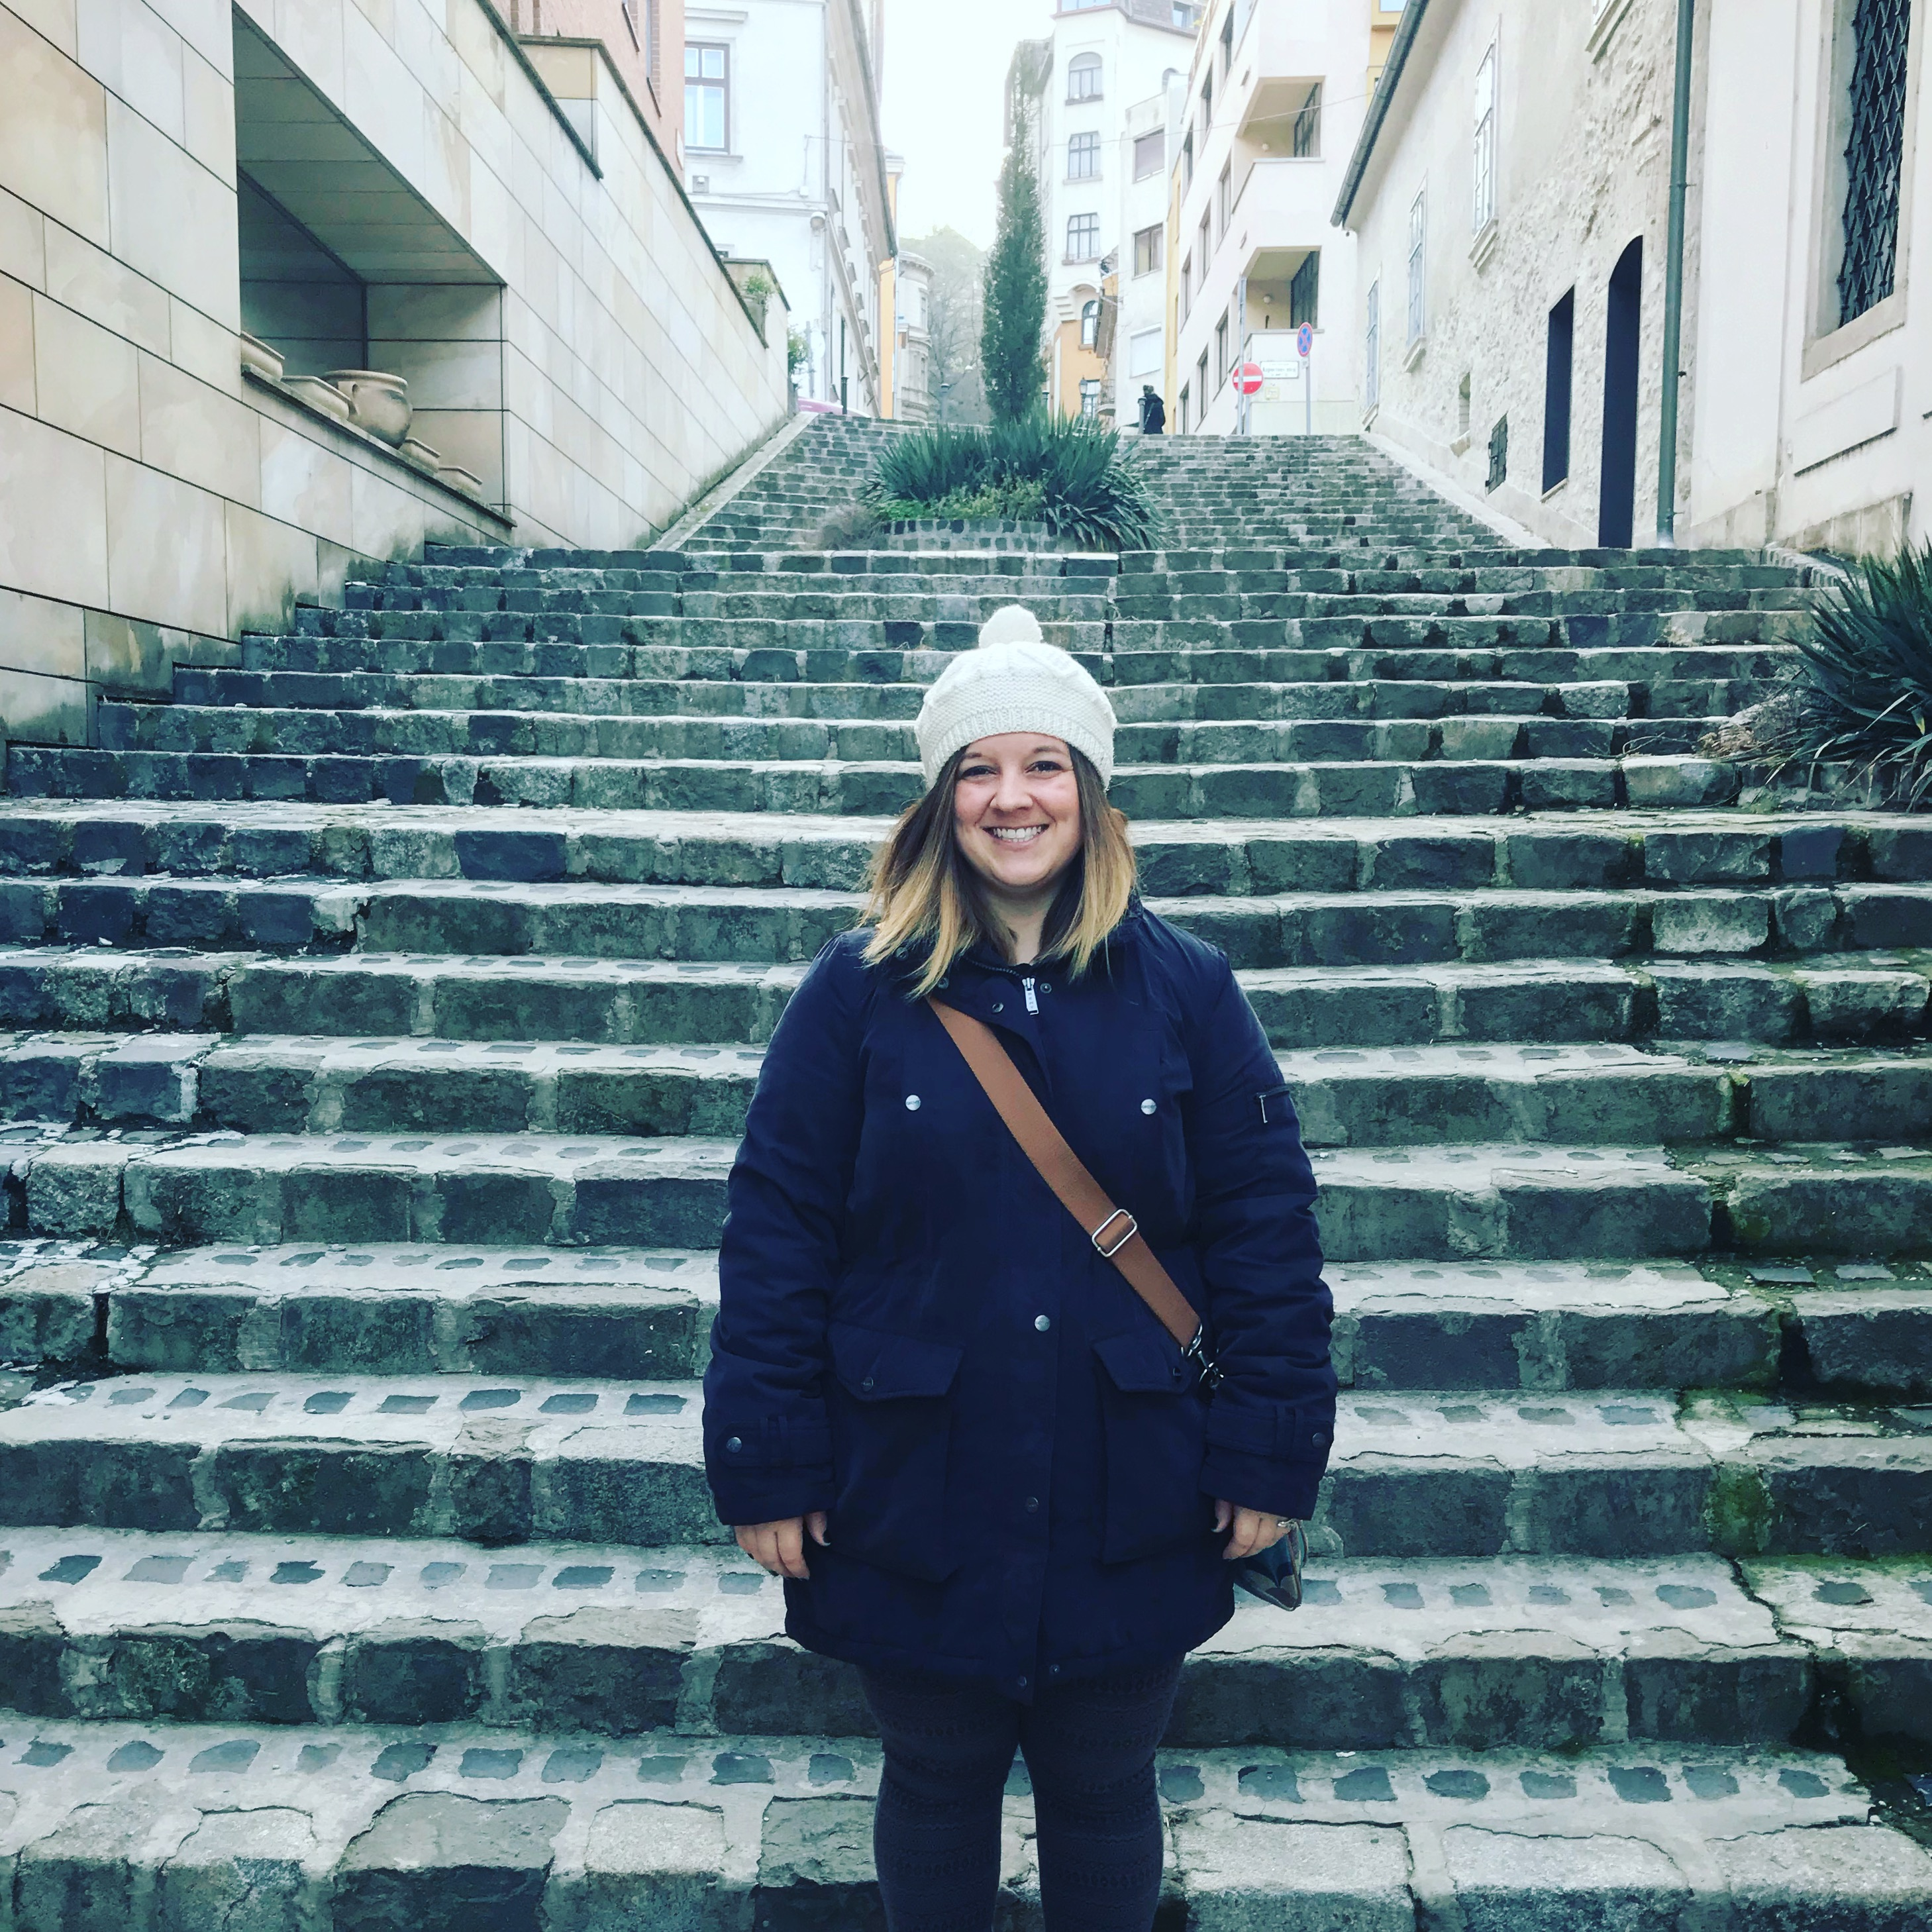 Alicia on steps with winter outfit